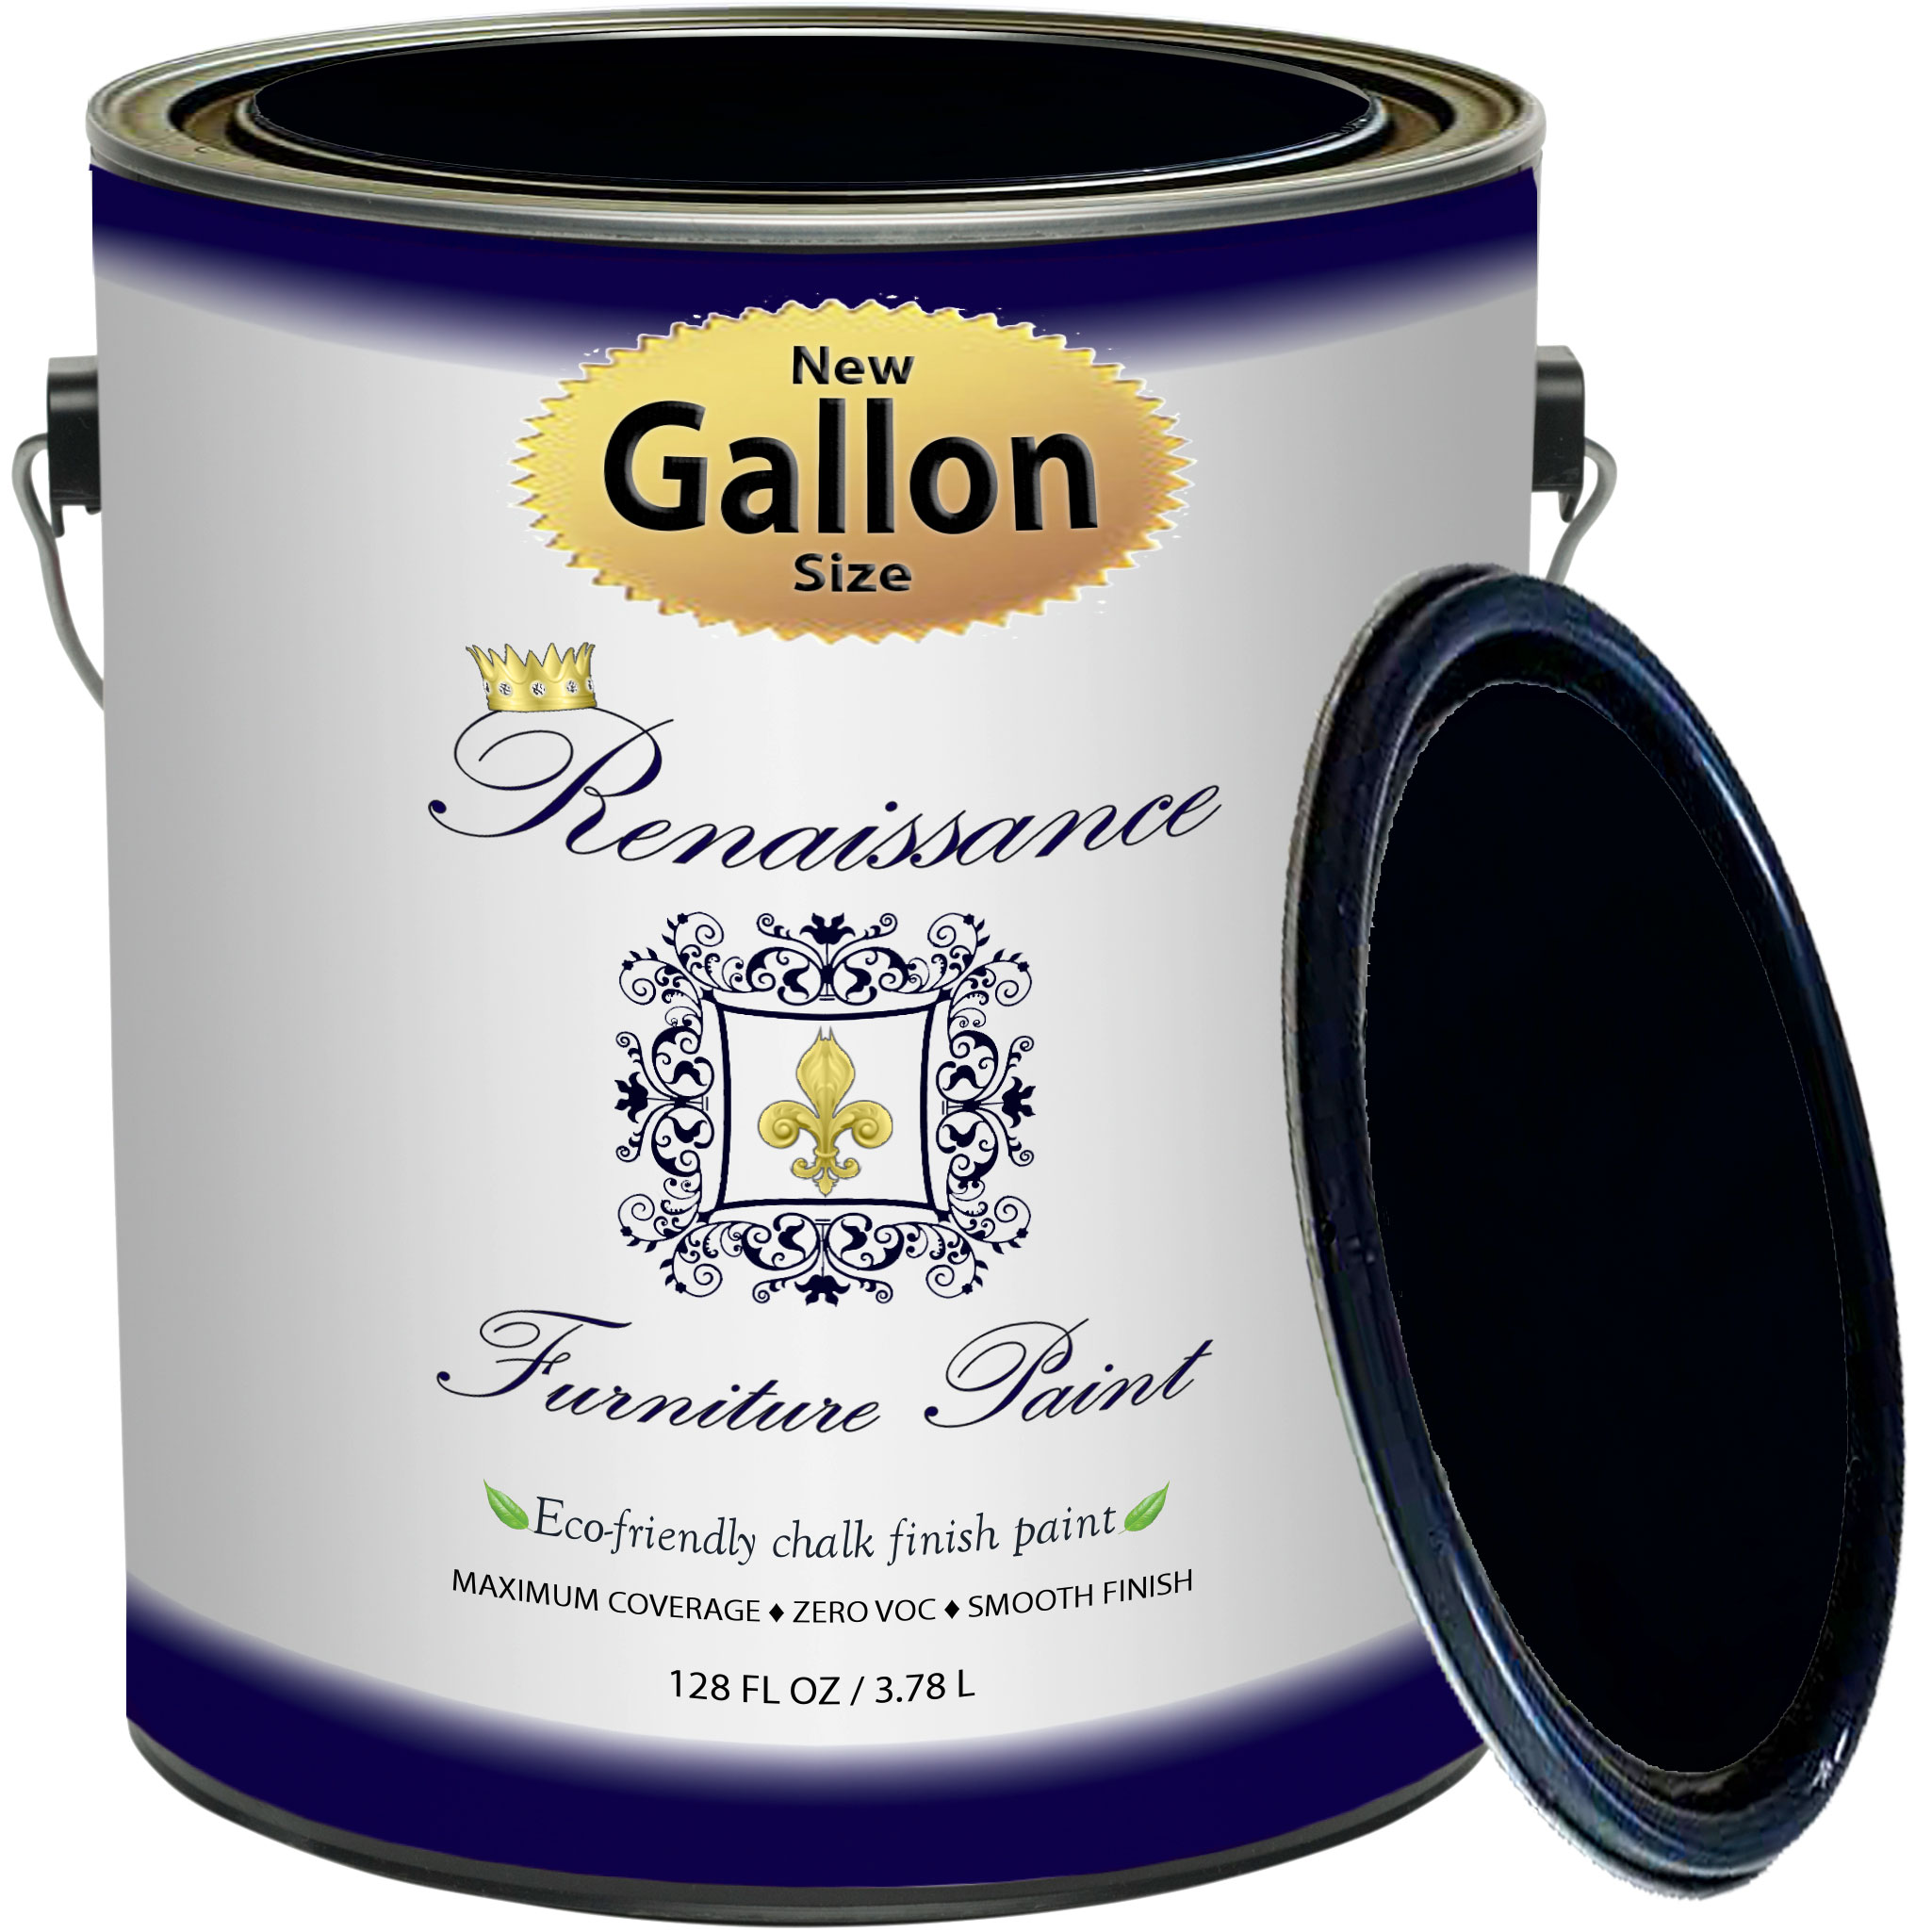 Renaissance Chalk Finish Paint - Midnight Black Gallon (128oz) - Chalk Furniture & Cabinet Paint - Non Toxic, Eco-Friendly, Superior Coverage